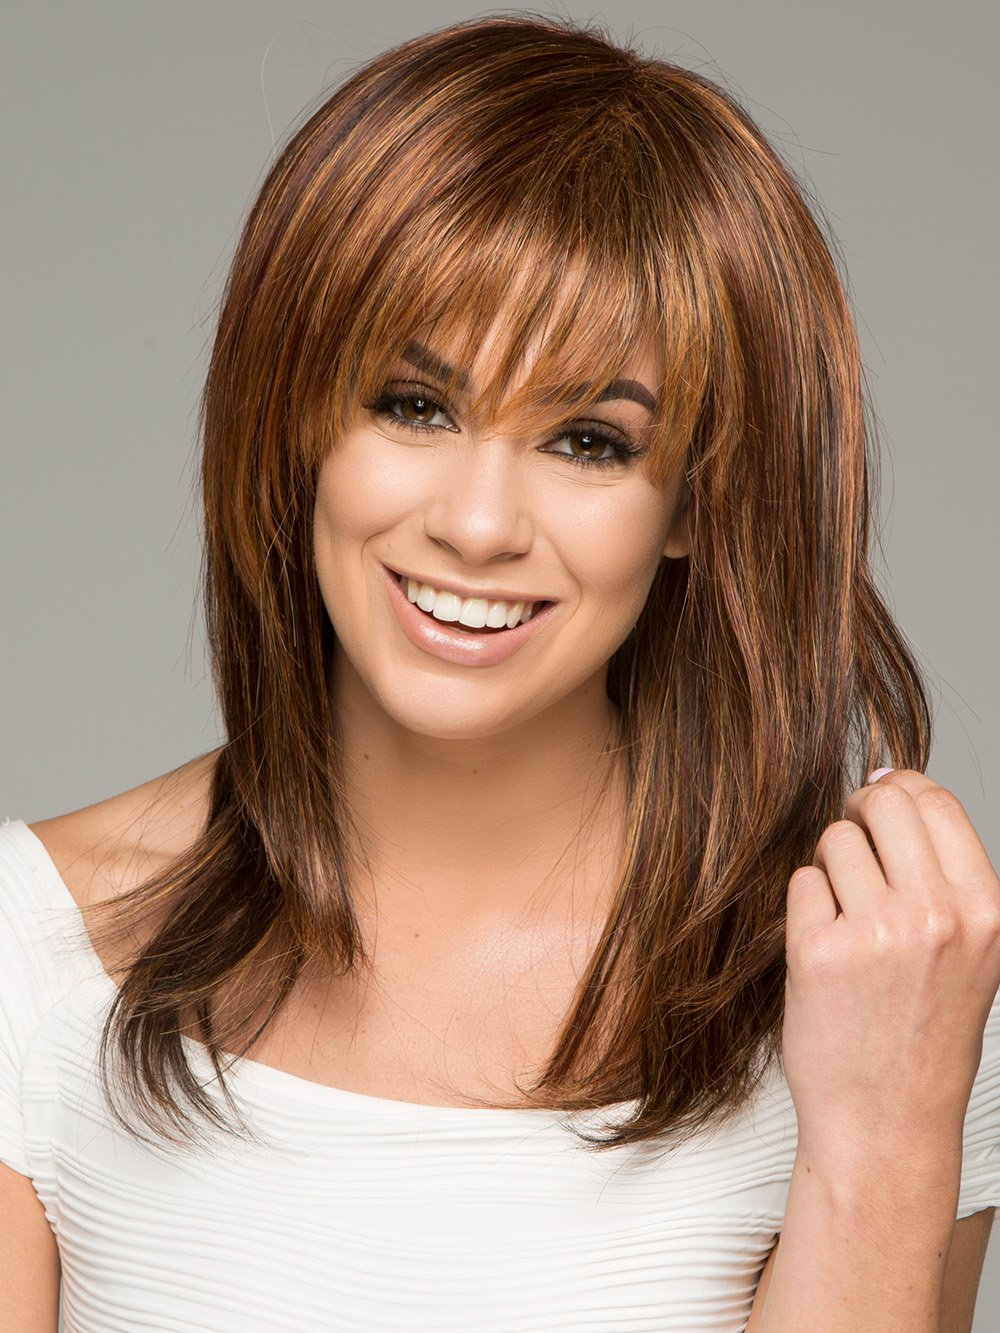 Photo enigma platinum collection full image - Enigma By Raquel Welch In R3329s Glazed Auburn Rich Dark Auburn With Pale Ginger Blonde